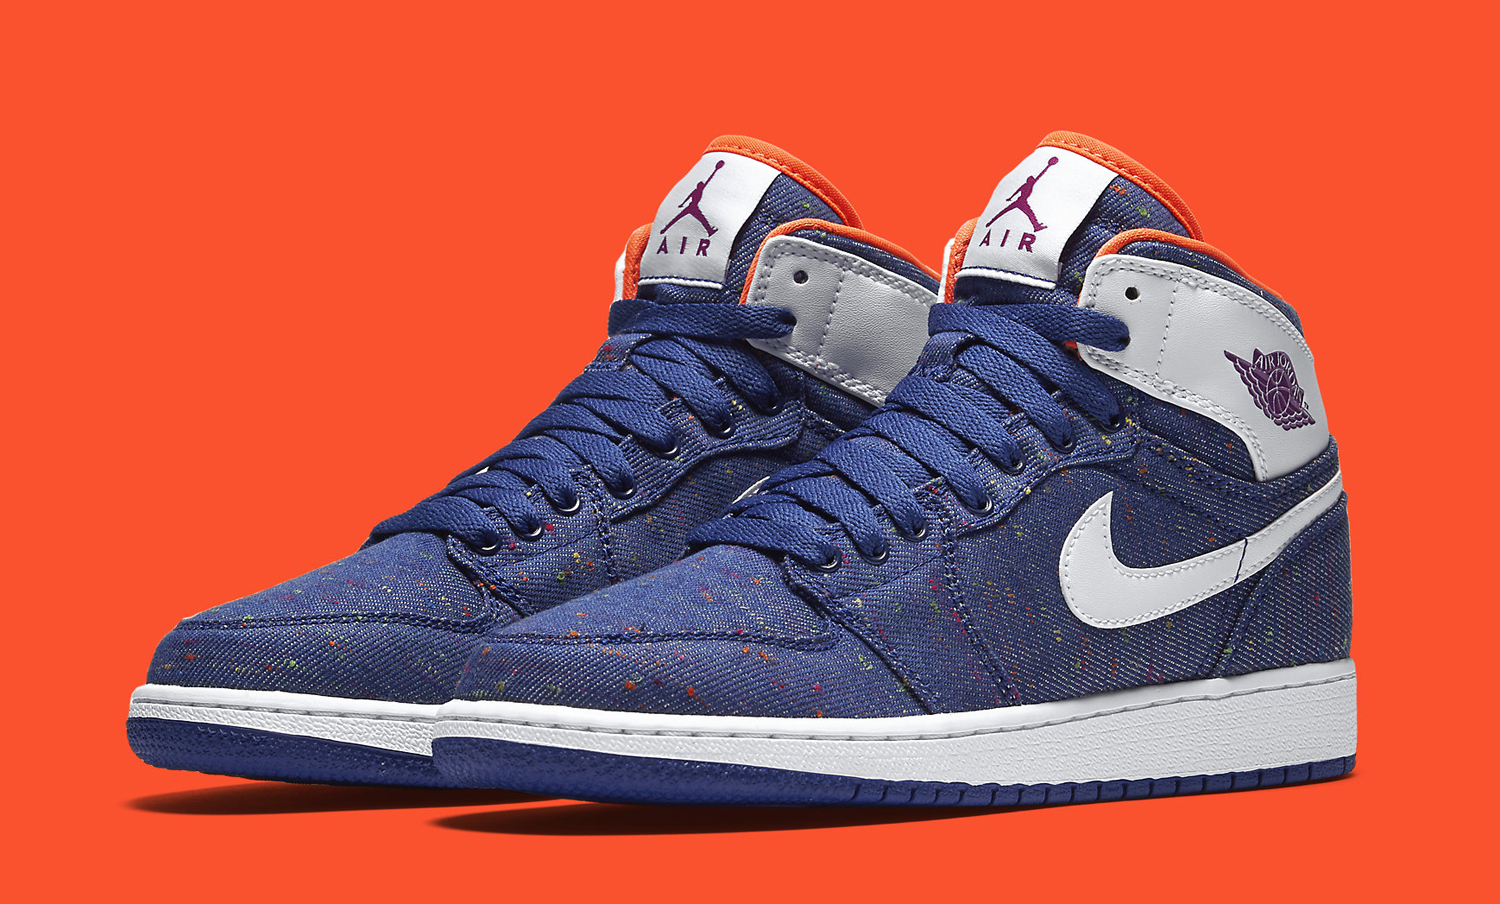 ff064a71d28 Air Jordan 1s Get a Denim Makeover